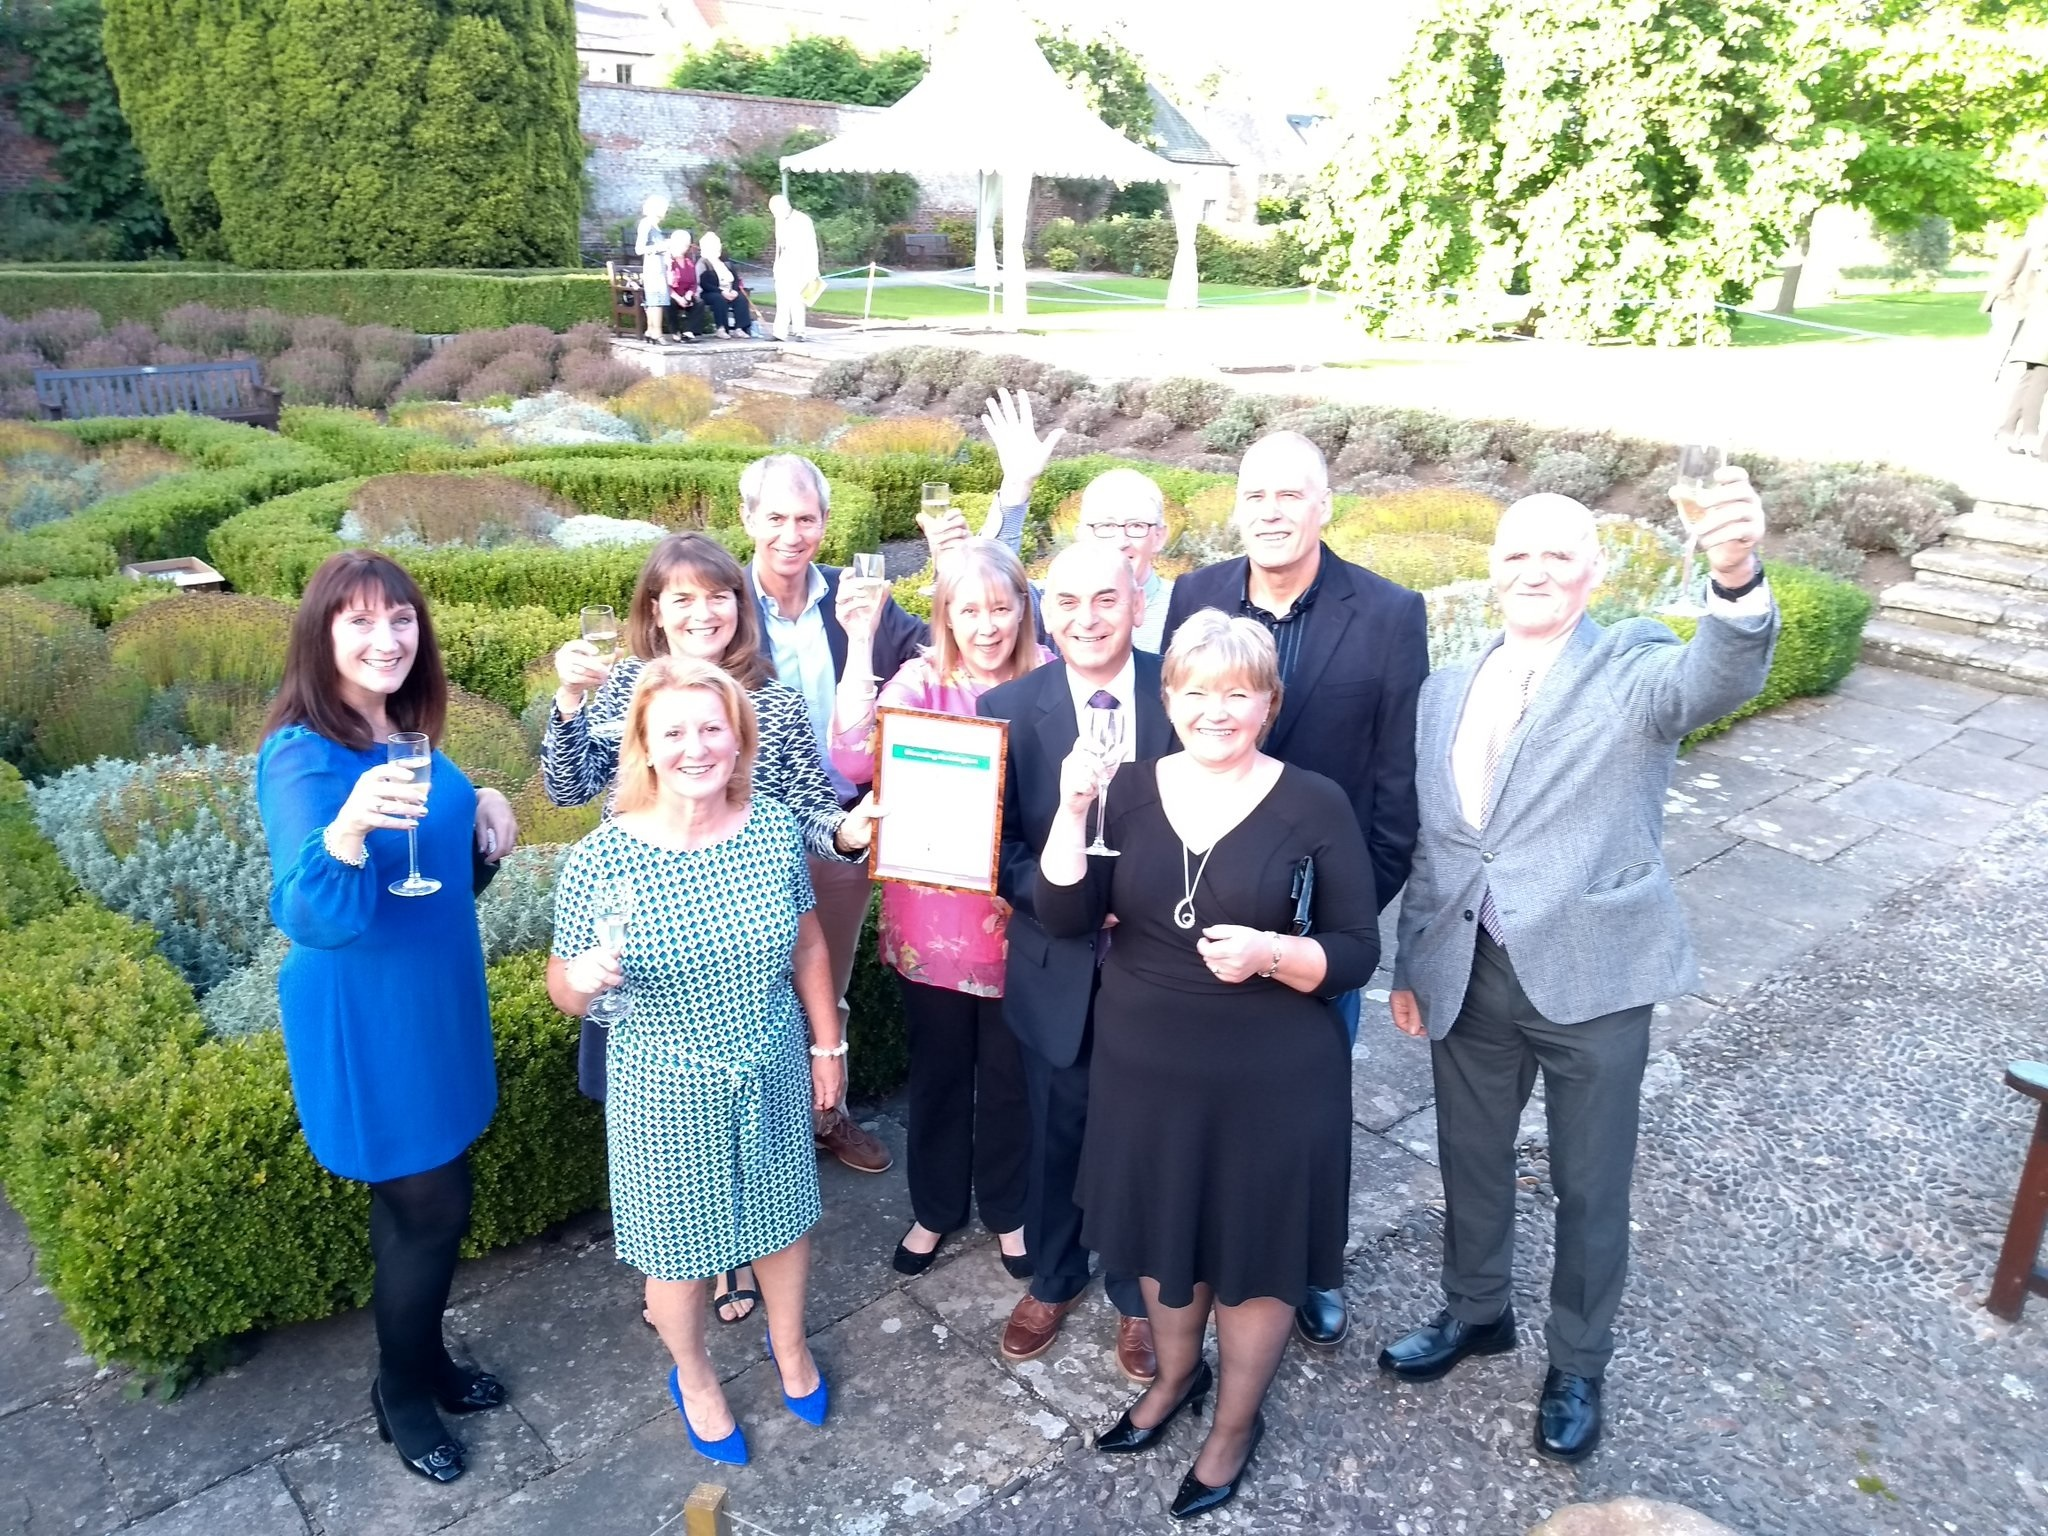 Blooming Haddington members celebrate their success. Image Blooming Haddington Twitter